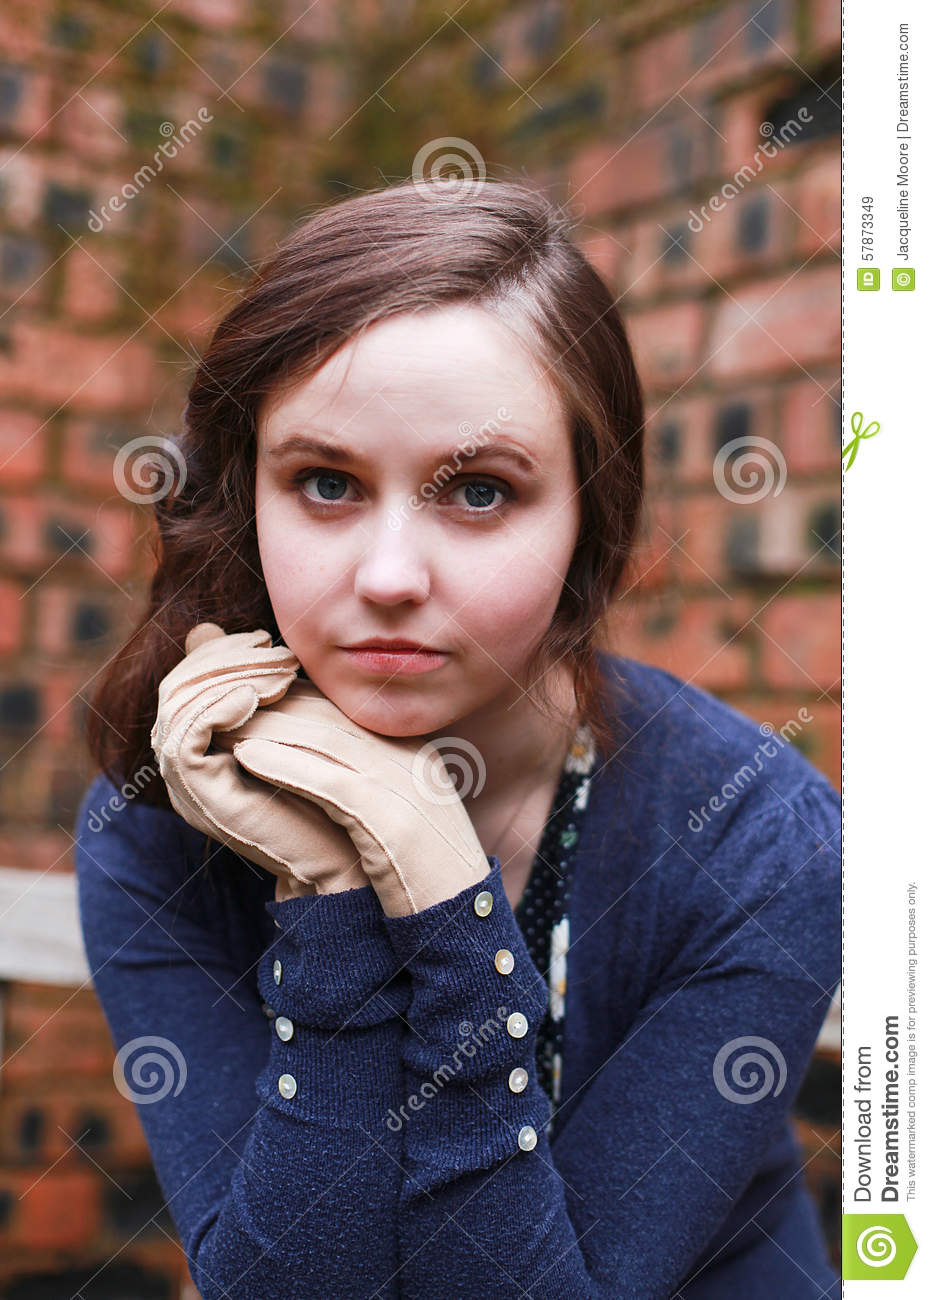 Woman Book Tattoo Lean Forward Sit Stock Photo - Image of ... |For Man Woman Leaning Forward